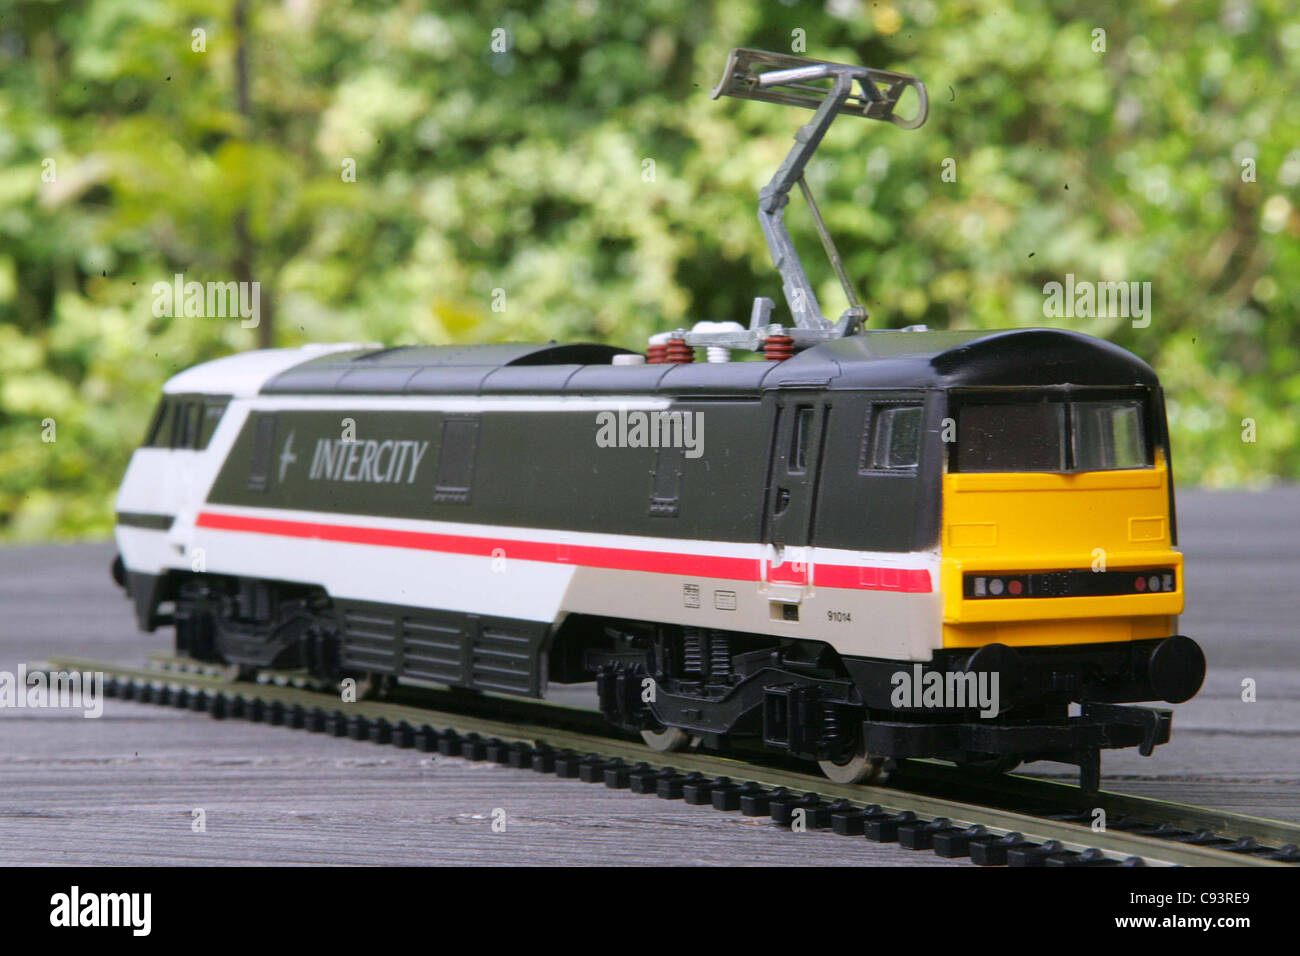 A series of OO scale (in UK Ireland) and HO scale Model railway